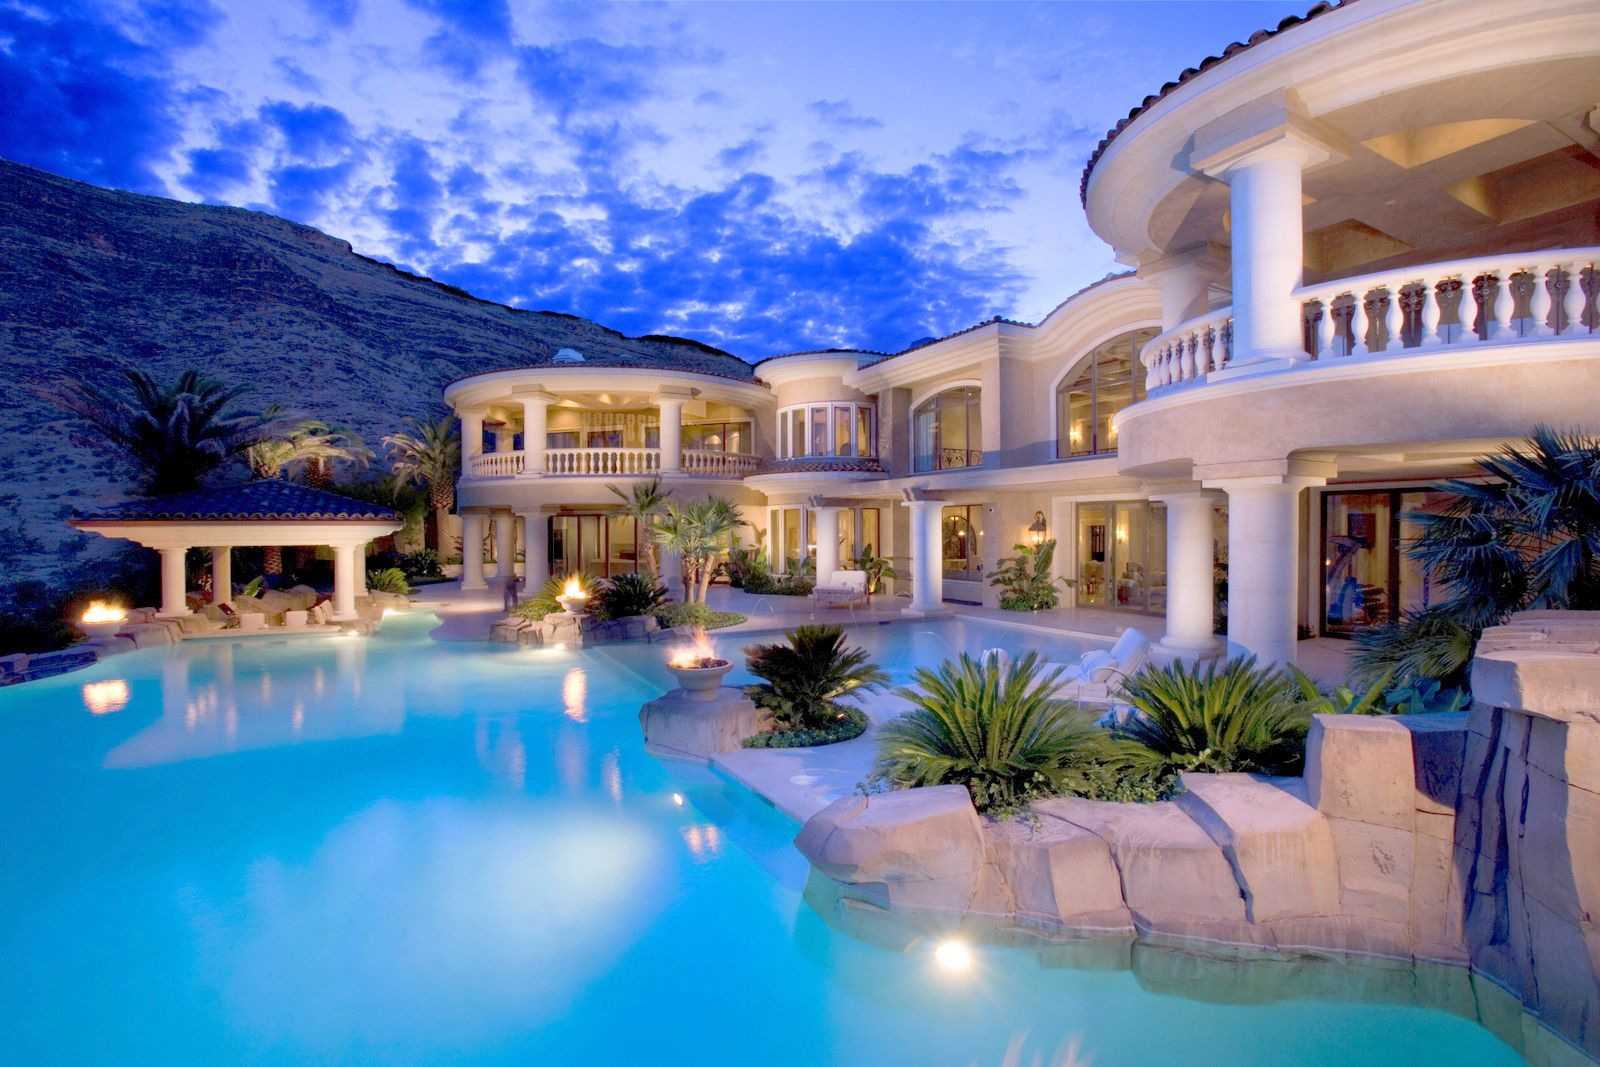 Las vegas luxury real estate luxury homes condos for for Luxury homes in alaska